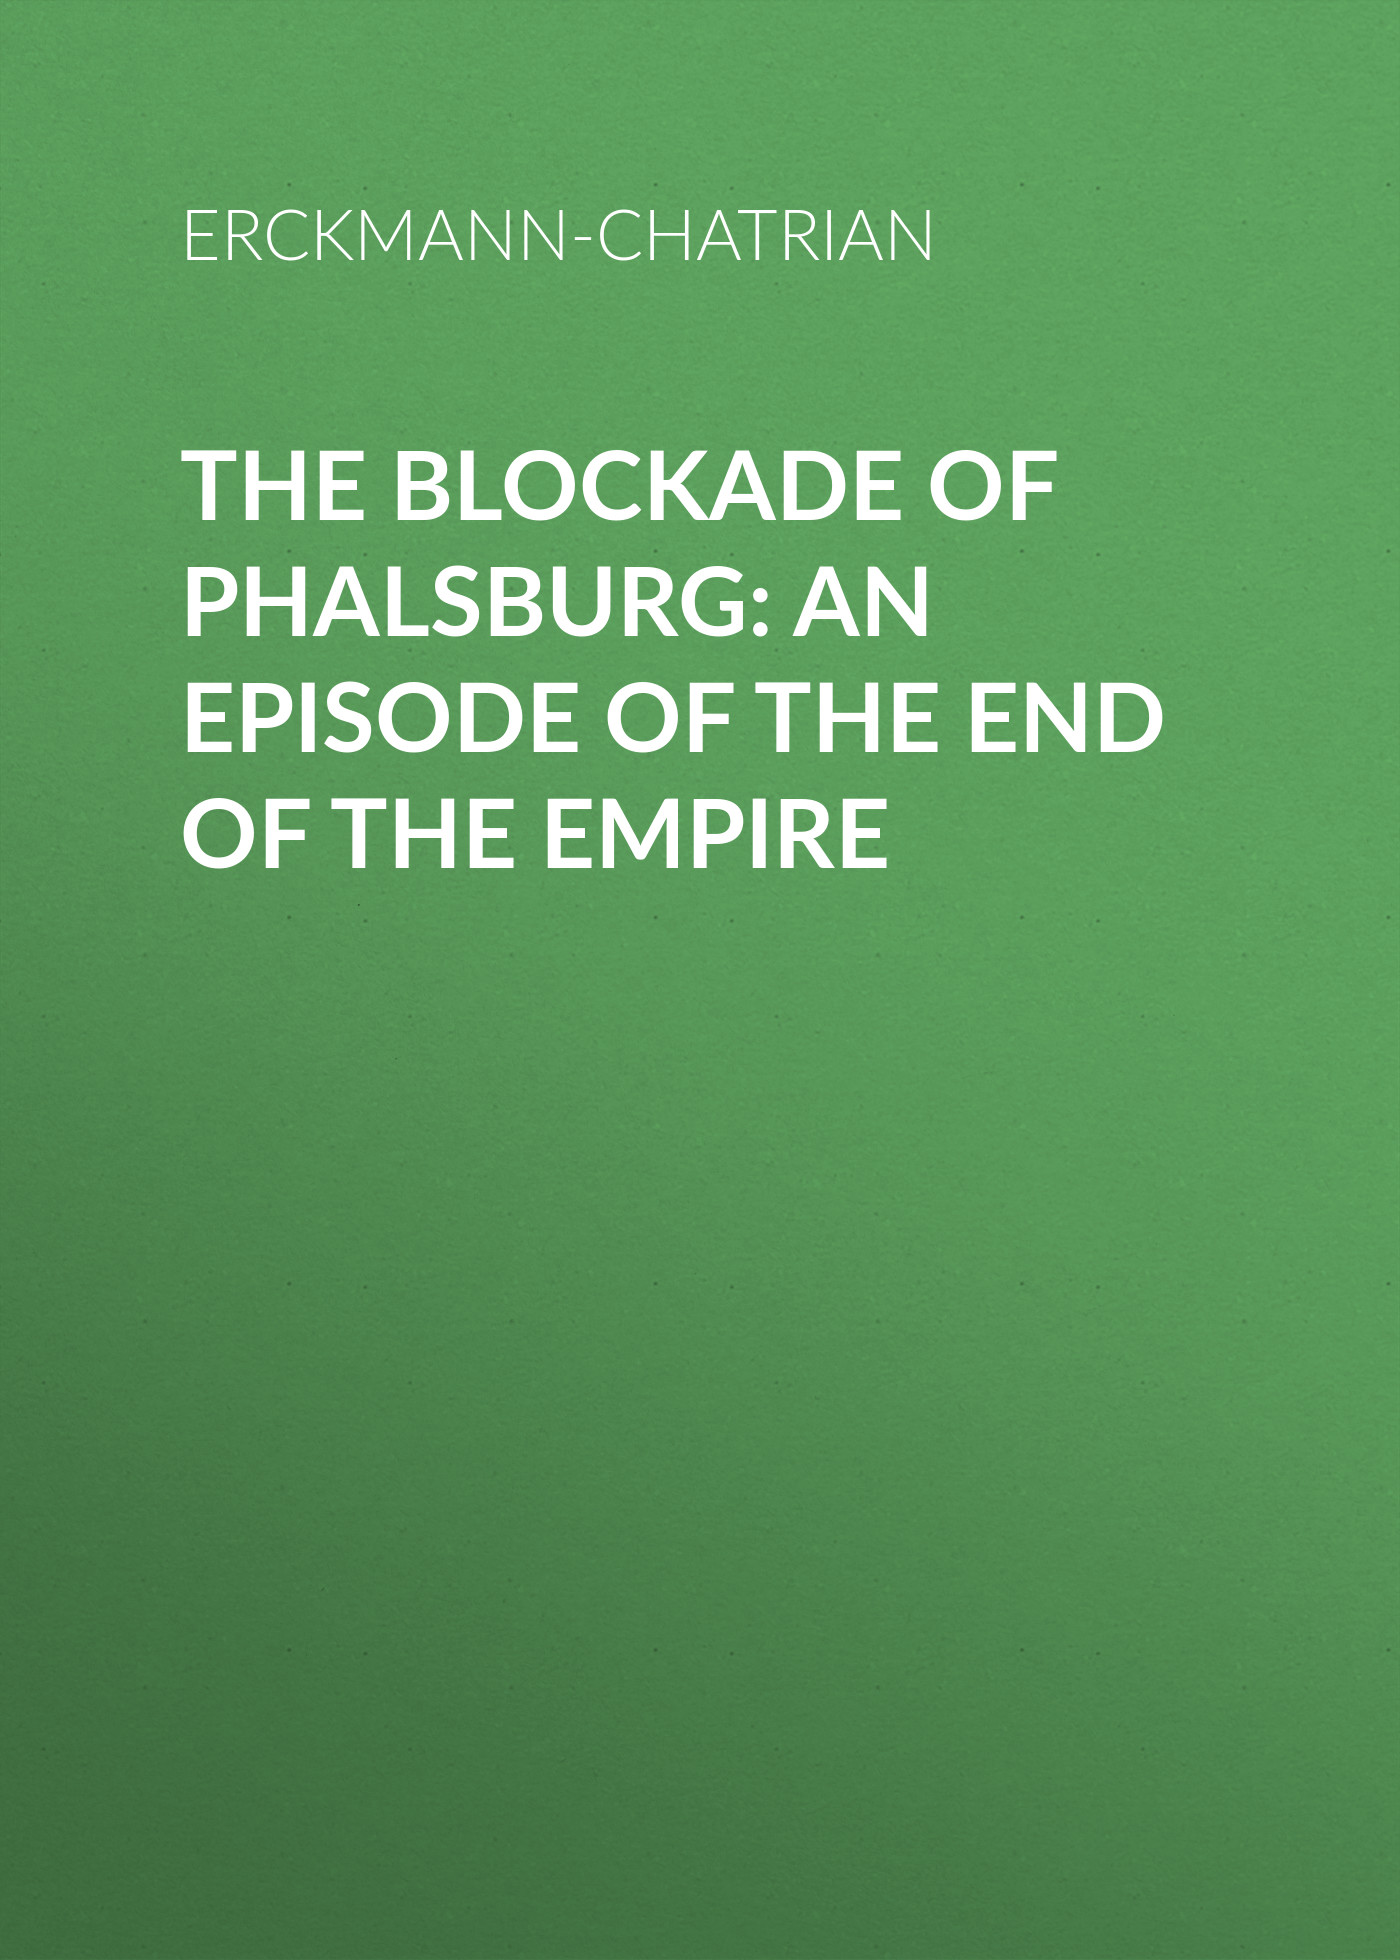 все цены на Erckmann-Chatrian The Blockade of Phalsburg: An Episode of the End of the Empire